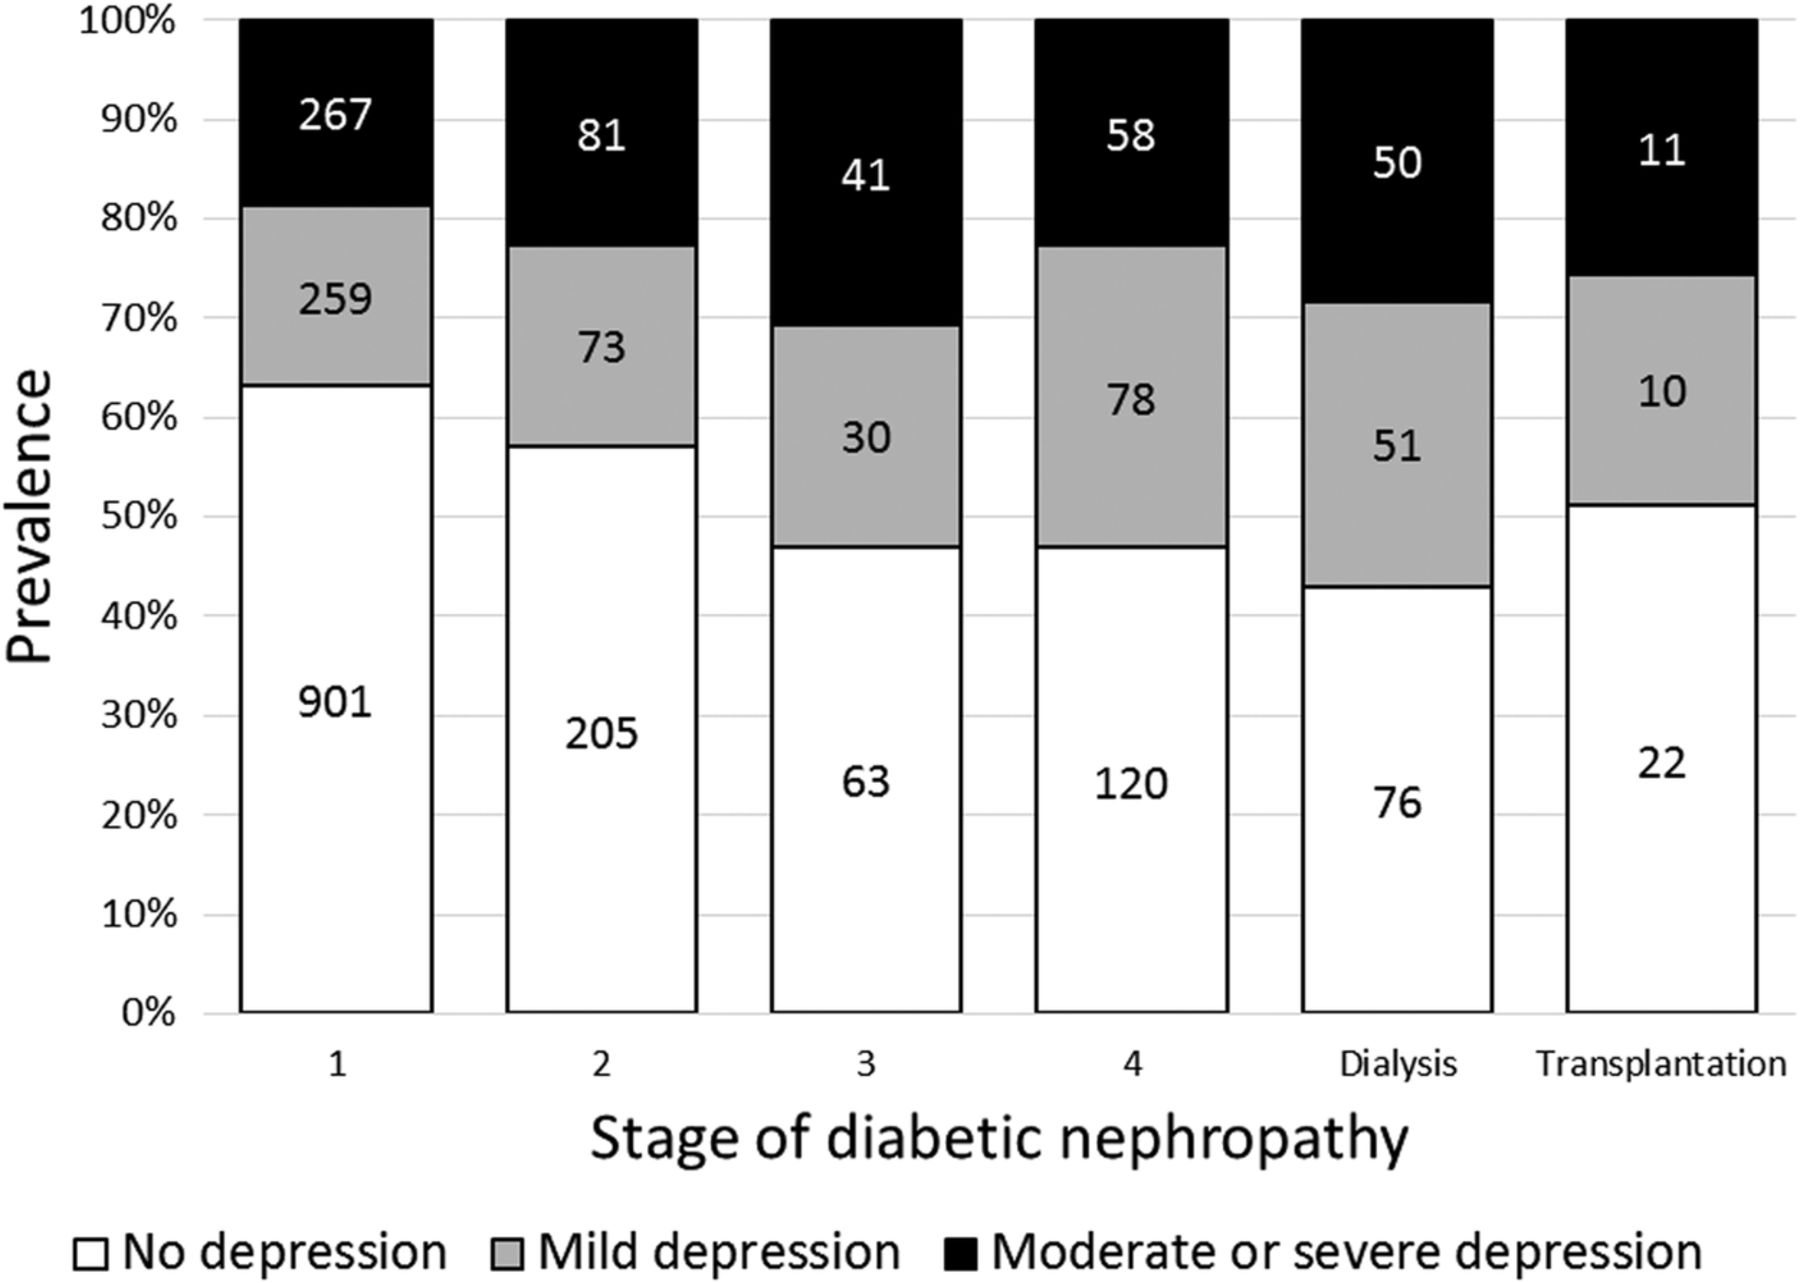 link between diabetes and depression Oxenkrug g, ratner r, summergrad p the increased association between depression and diabetes mellitus is generally acknowledged recent studies suggest that depression leads to diabetes however, the underlying molecular mechanisms for this association remain unclear literature and our data.